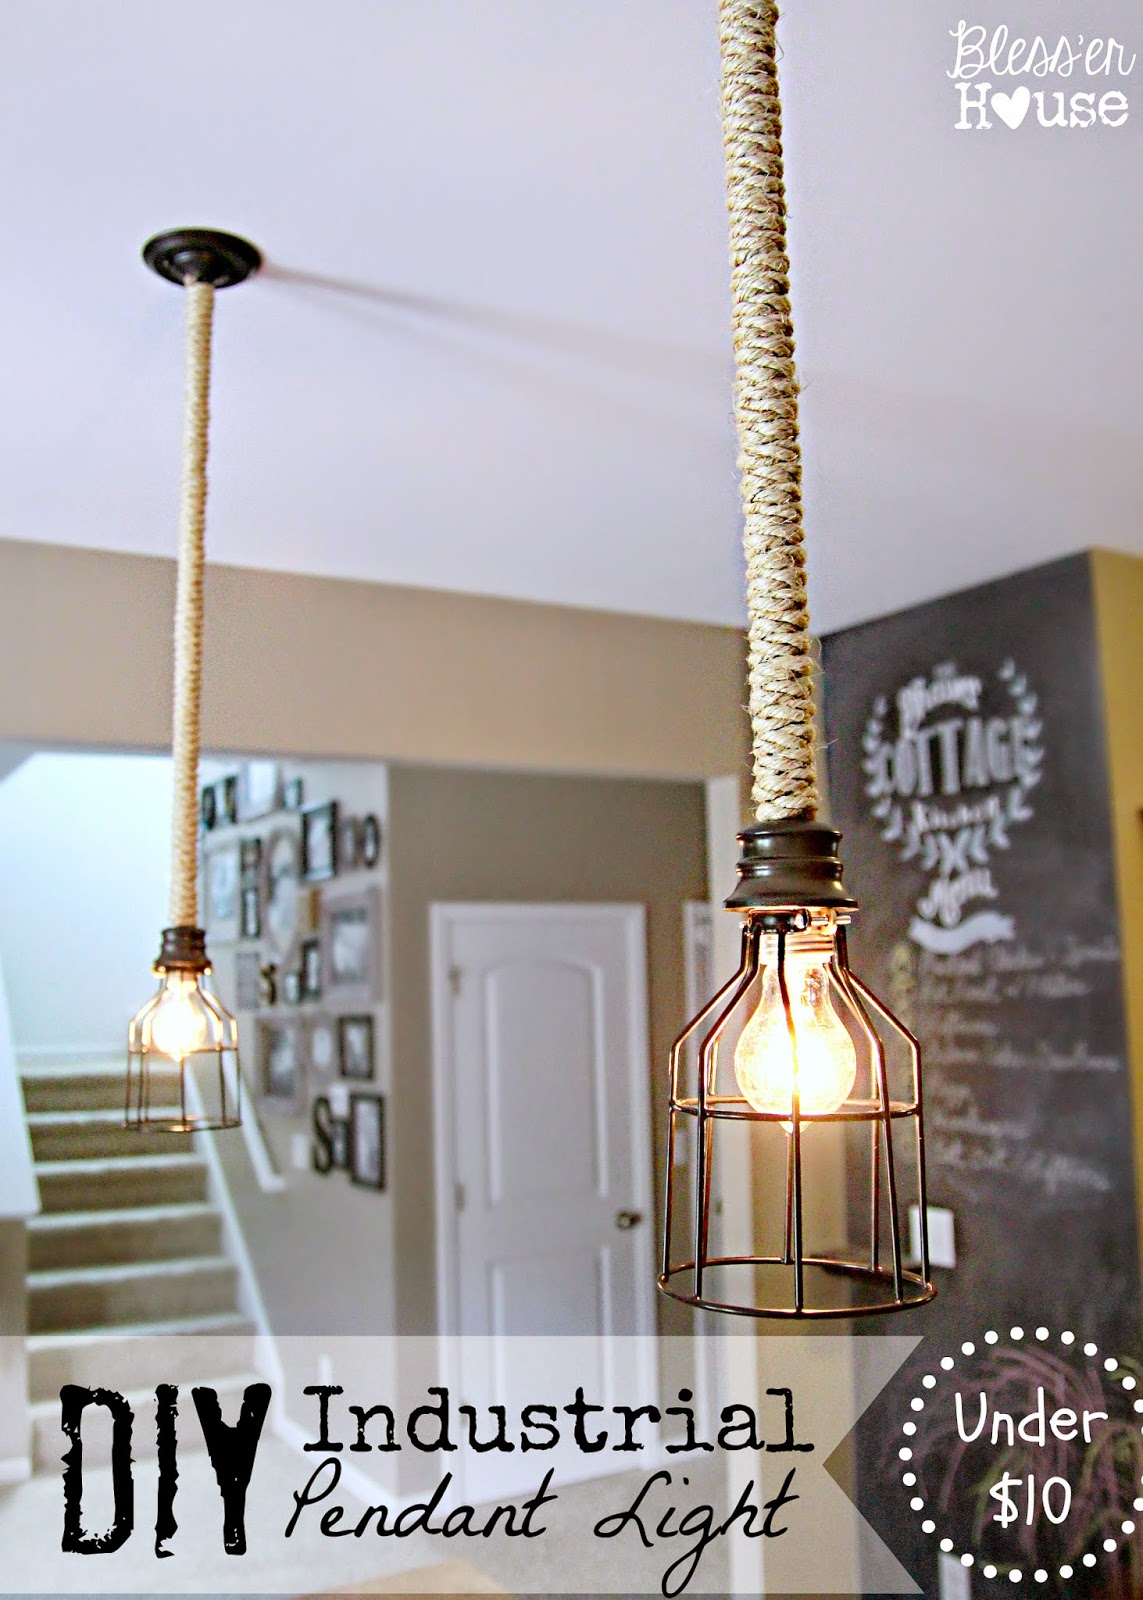 DIY Industrial Pendant Light Blessu0027er House & DIY Industrial Pendant Light for Under $10 - Blessu0027er House azcodes.com